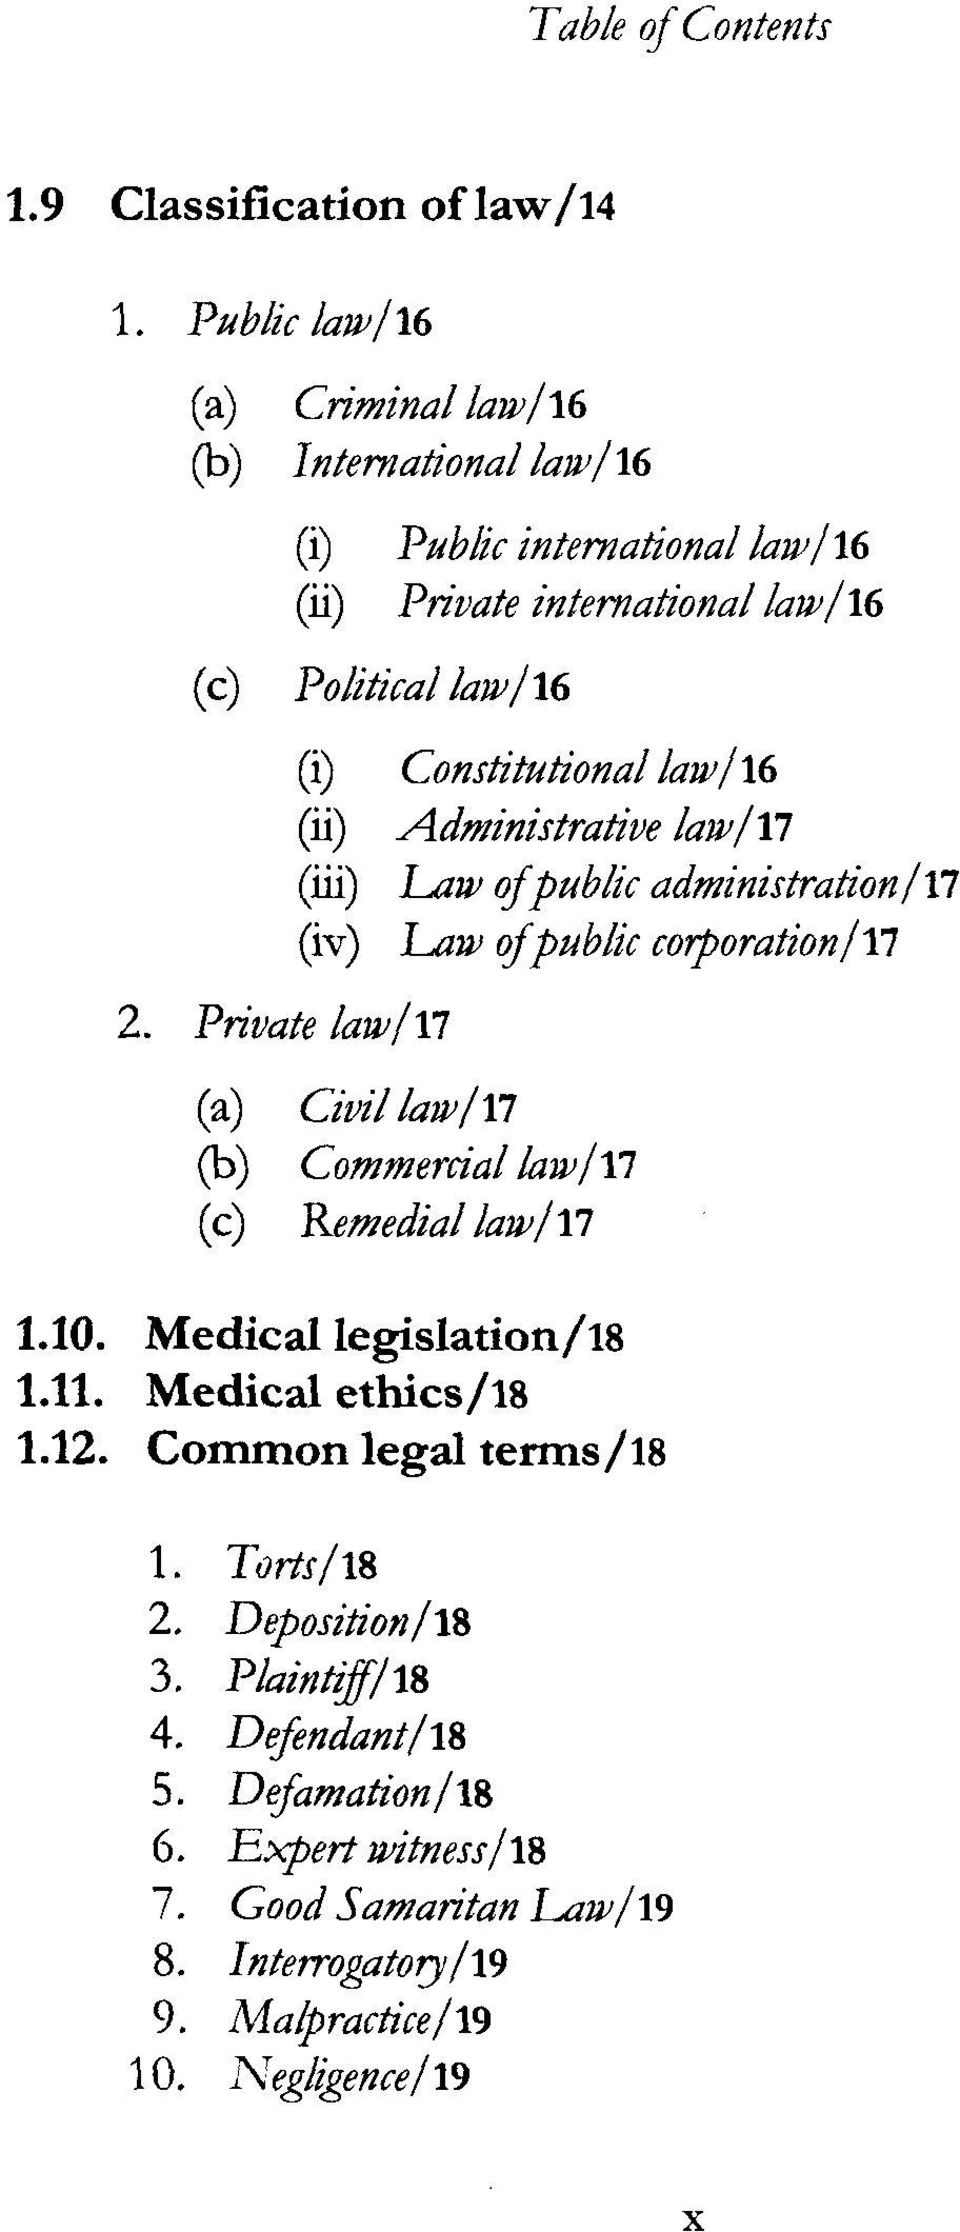 Basics of philippine medical jurisprudence and ethics pdf constitutional law16 ii administrative law11 iii i fandeluxe Choice Image